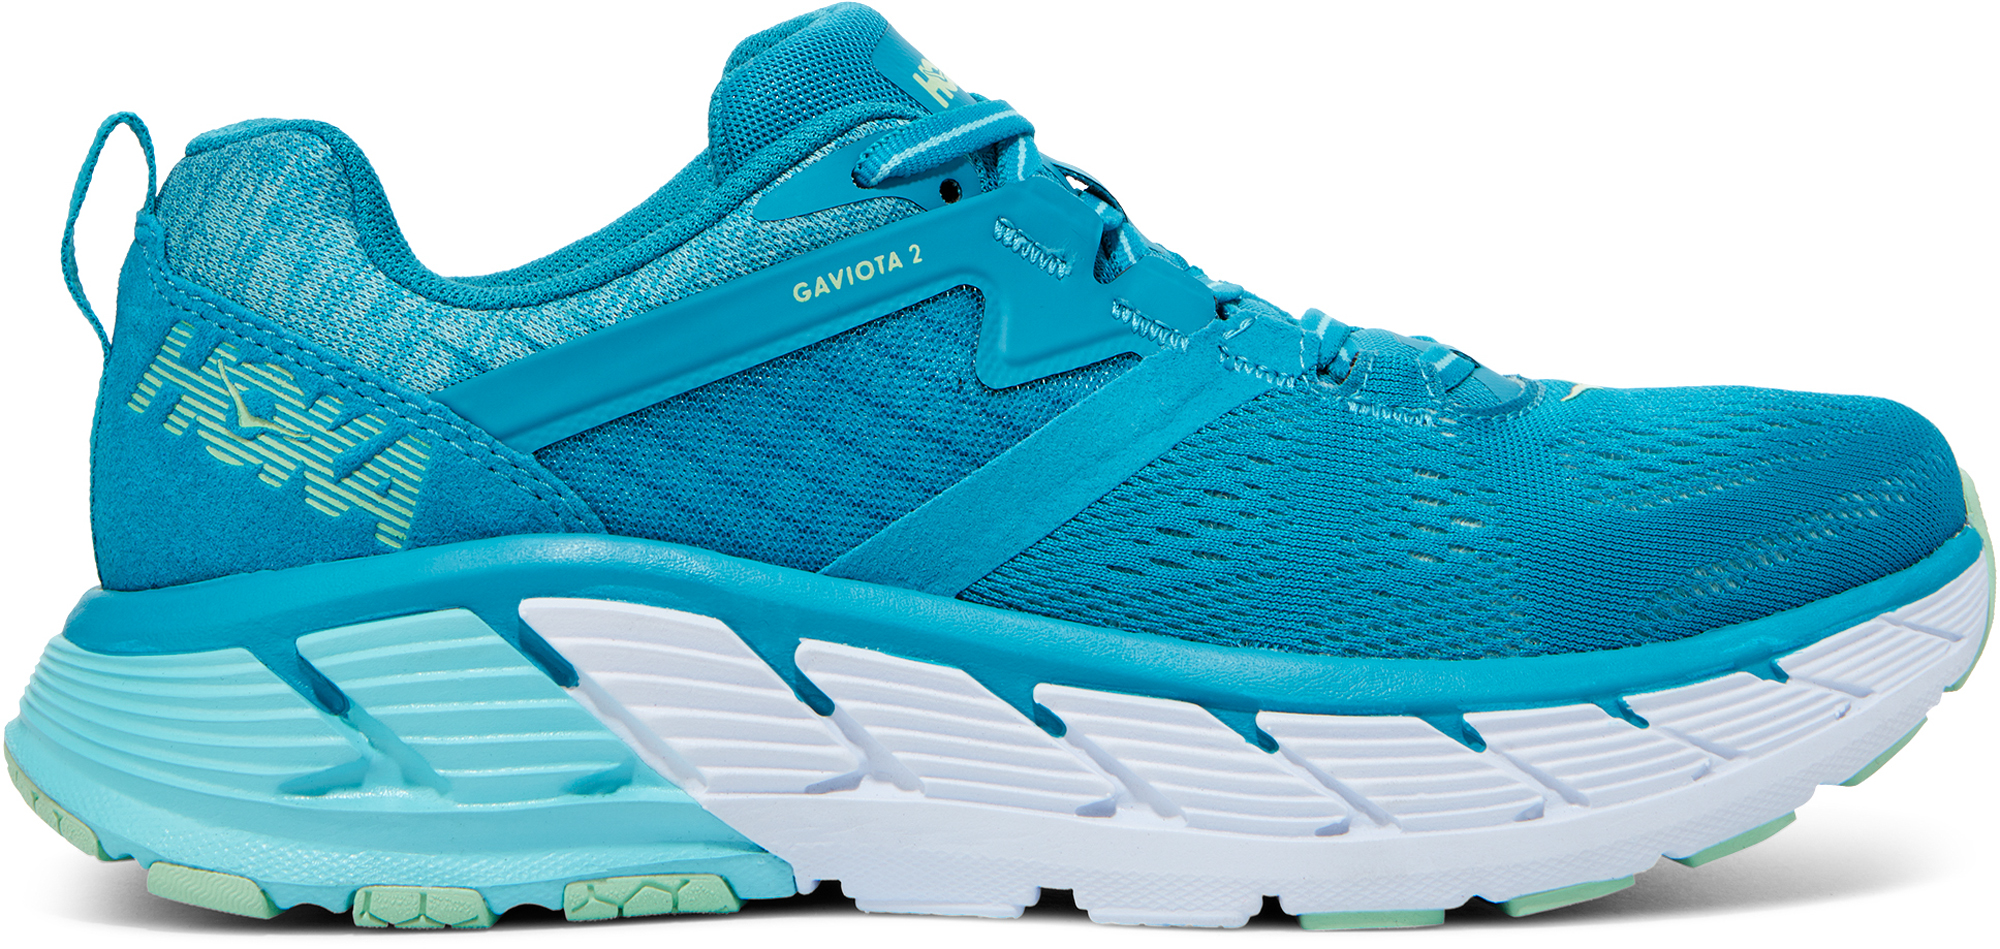 HOKA ONE ONE Кроссовки женские HOKA ONE ONE Gaviota 2, размер 38 hoka one one women s w conquest running shoe